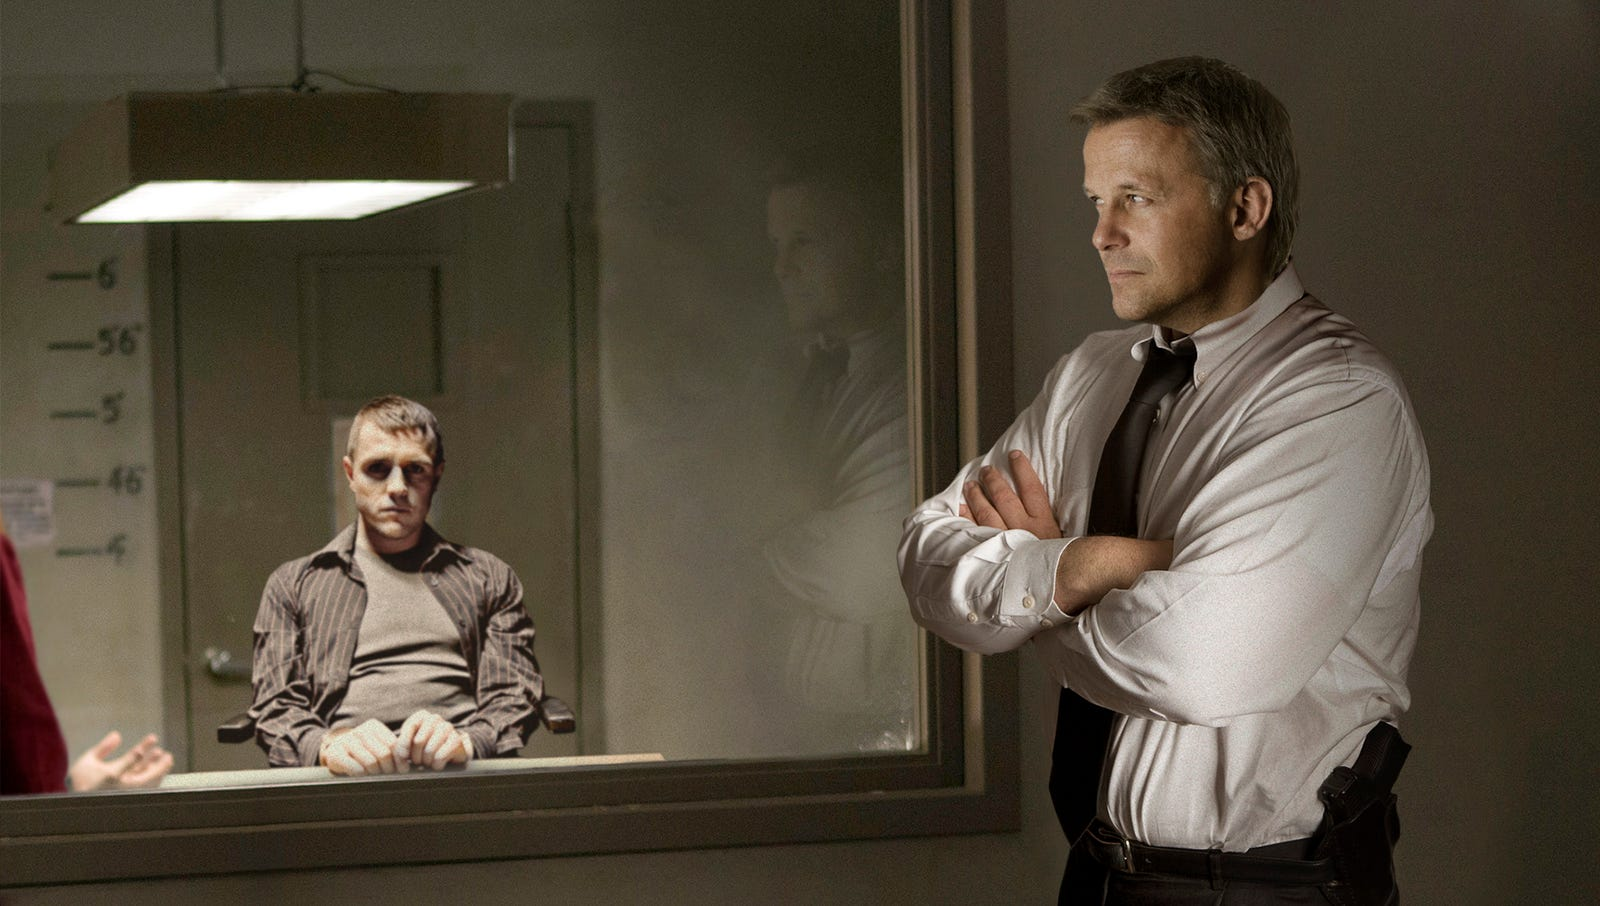 Detective Behind Two-Way Mirror Nervously Crosses Arms As Criminal Addresses Him Directly